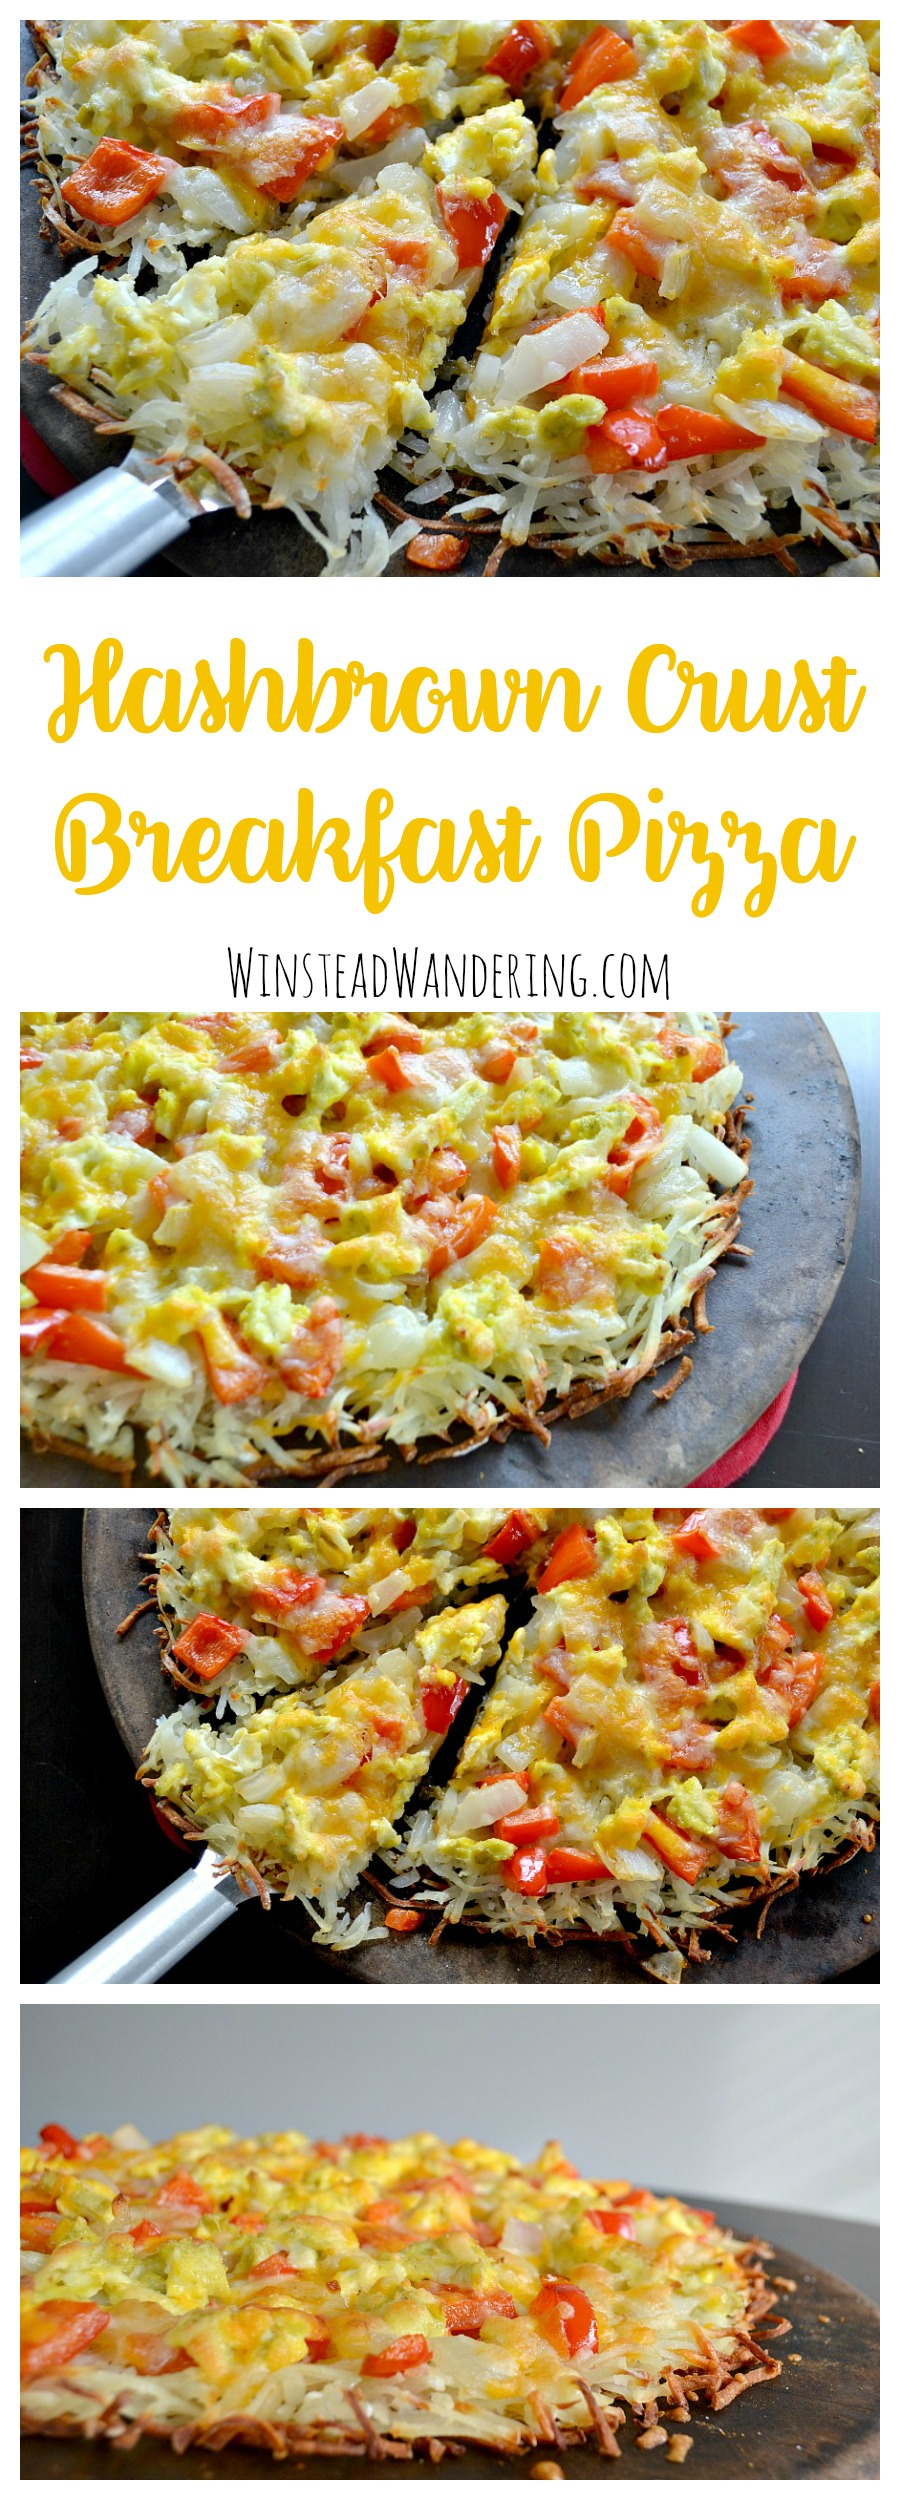 With a crispy crust, tender veggies, fluffy scrambled eggs, and plenty of melted cheese, this Hashbrown Crust Breakfast Pizza is perfect any time of day.